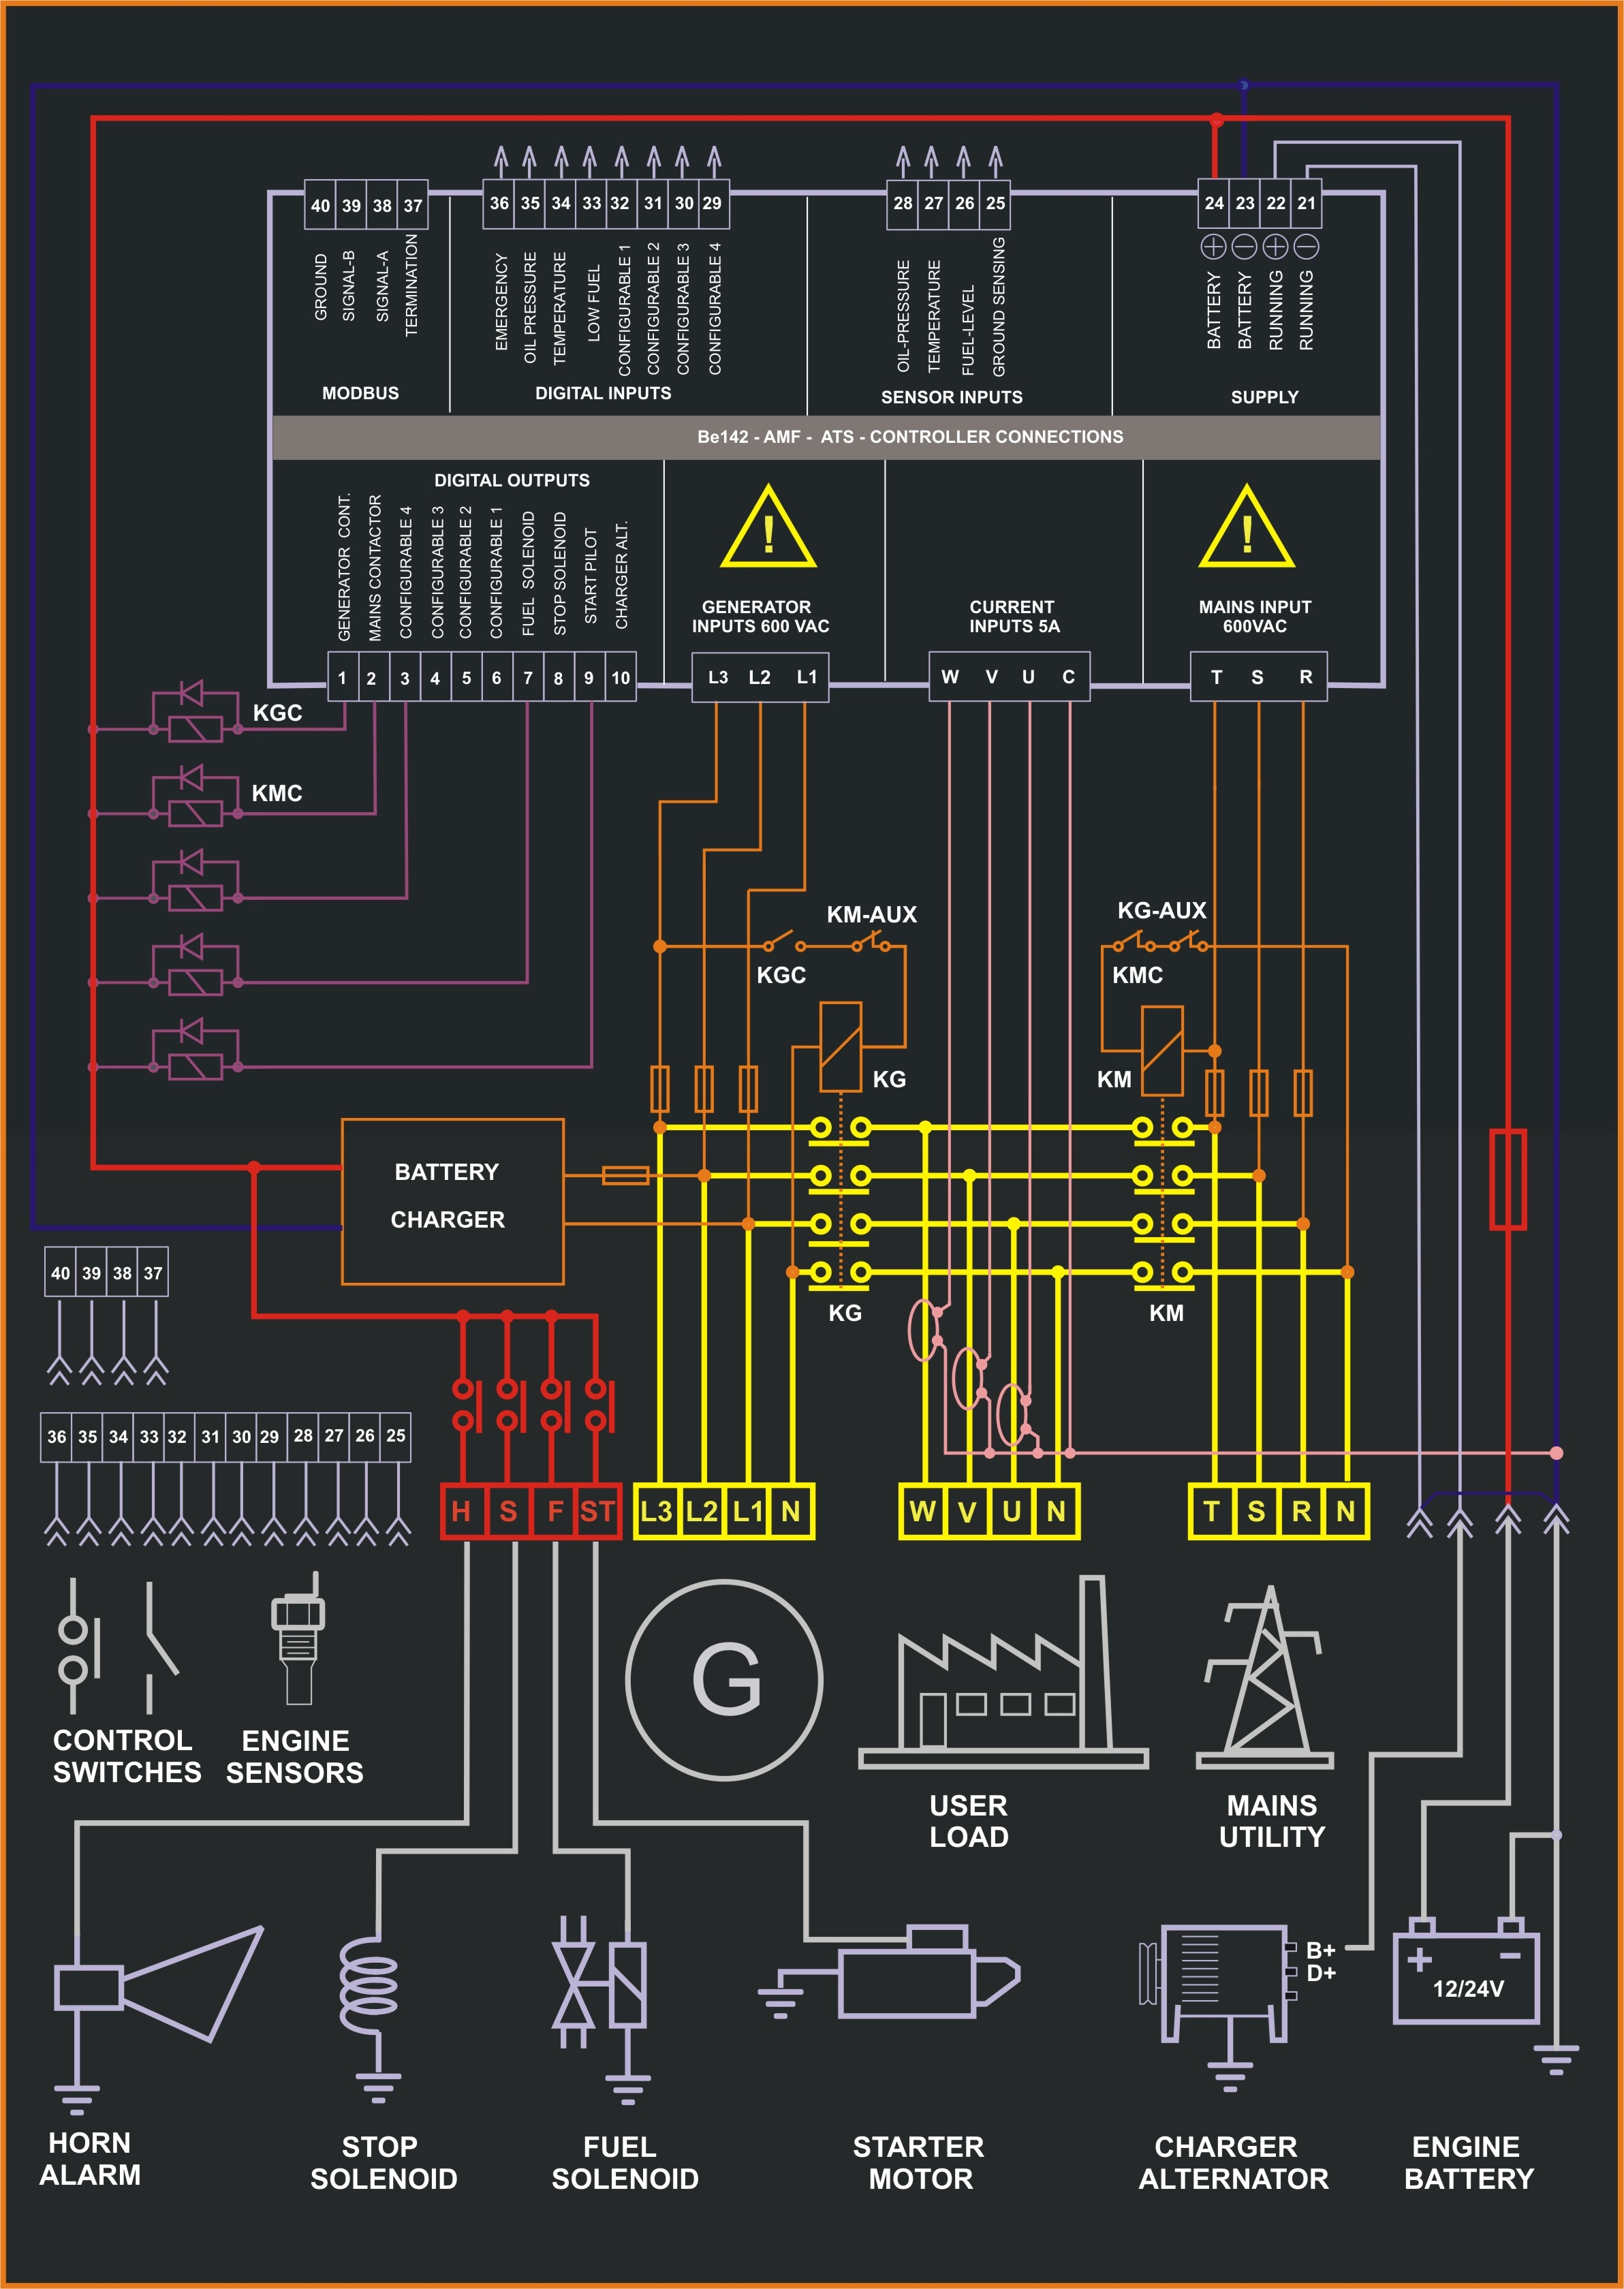 AMF Control Panel Circuit Diagram Be142 automatic mains failure control panel genset controller controller wire diagram for 3246e2 lift at webbmarketing.co